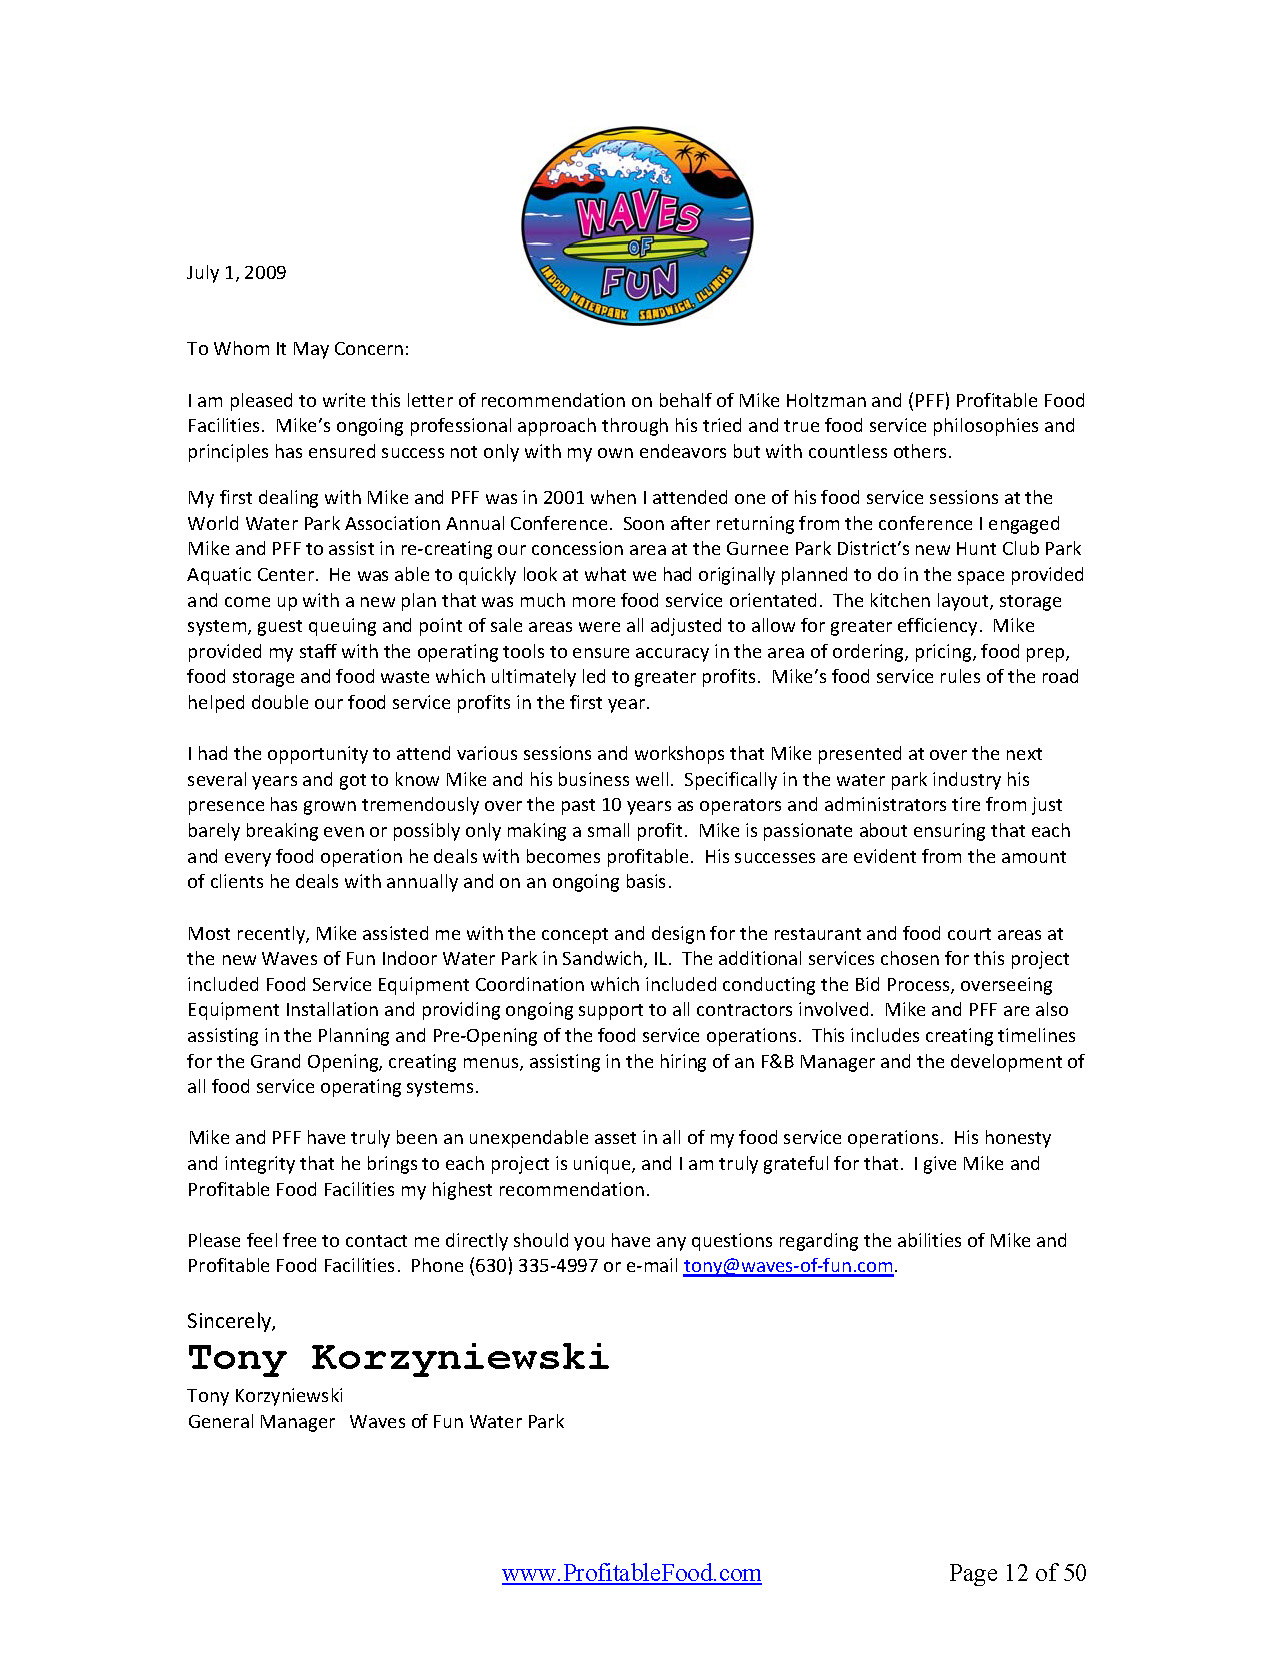 Waves of Fun Profitable Food Facilities Recommendation Letter